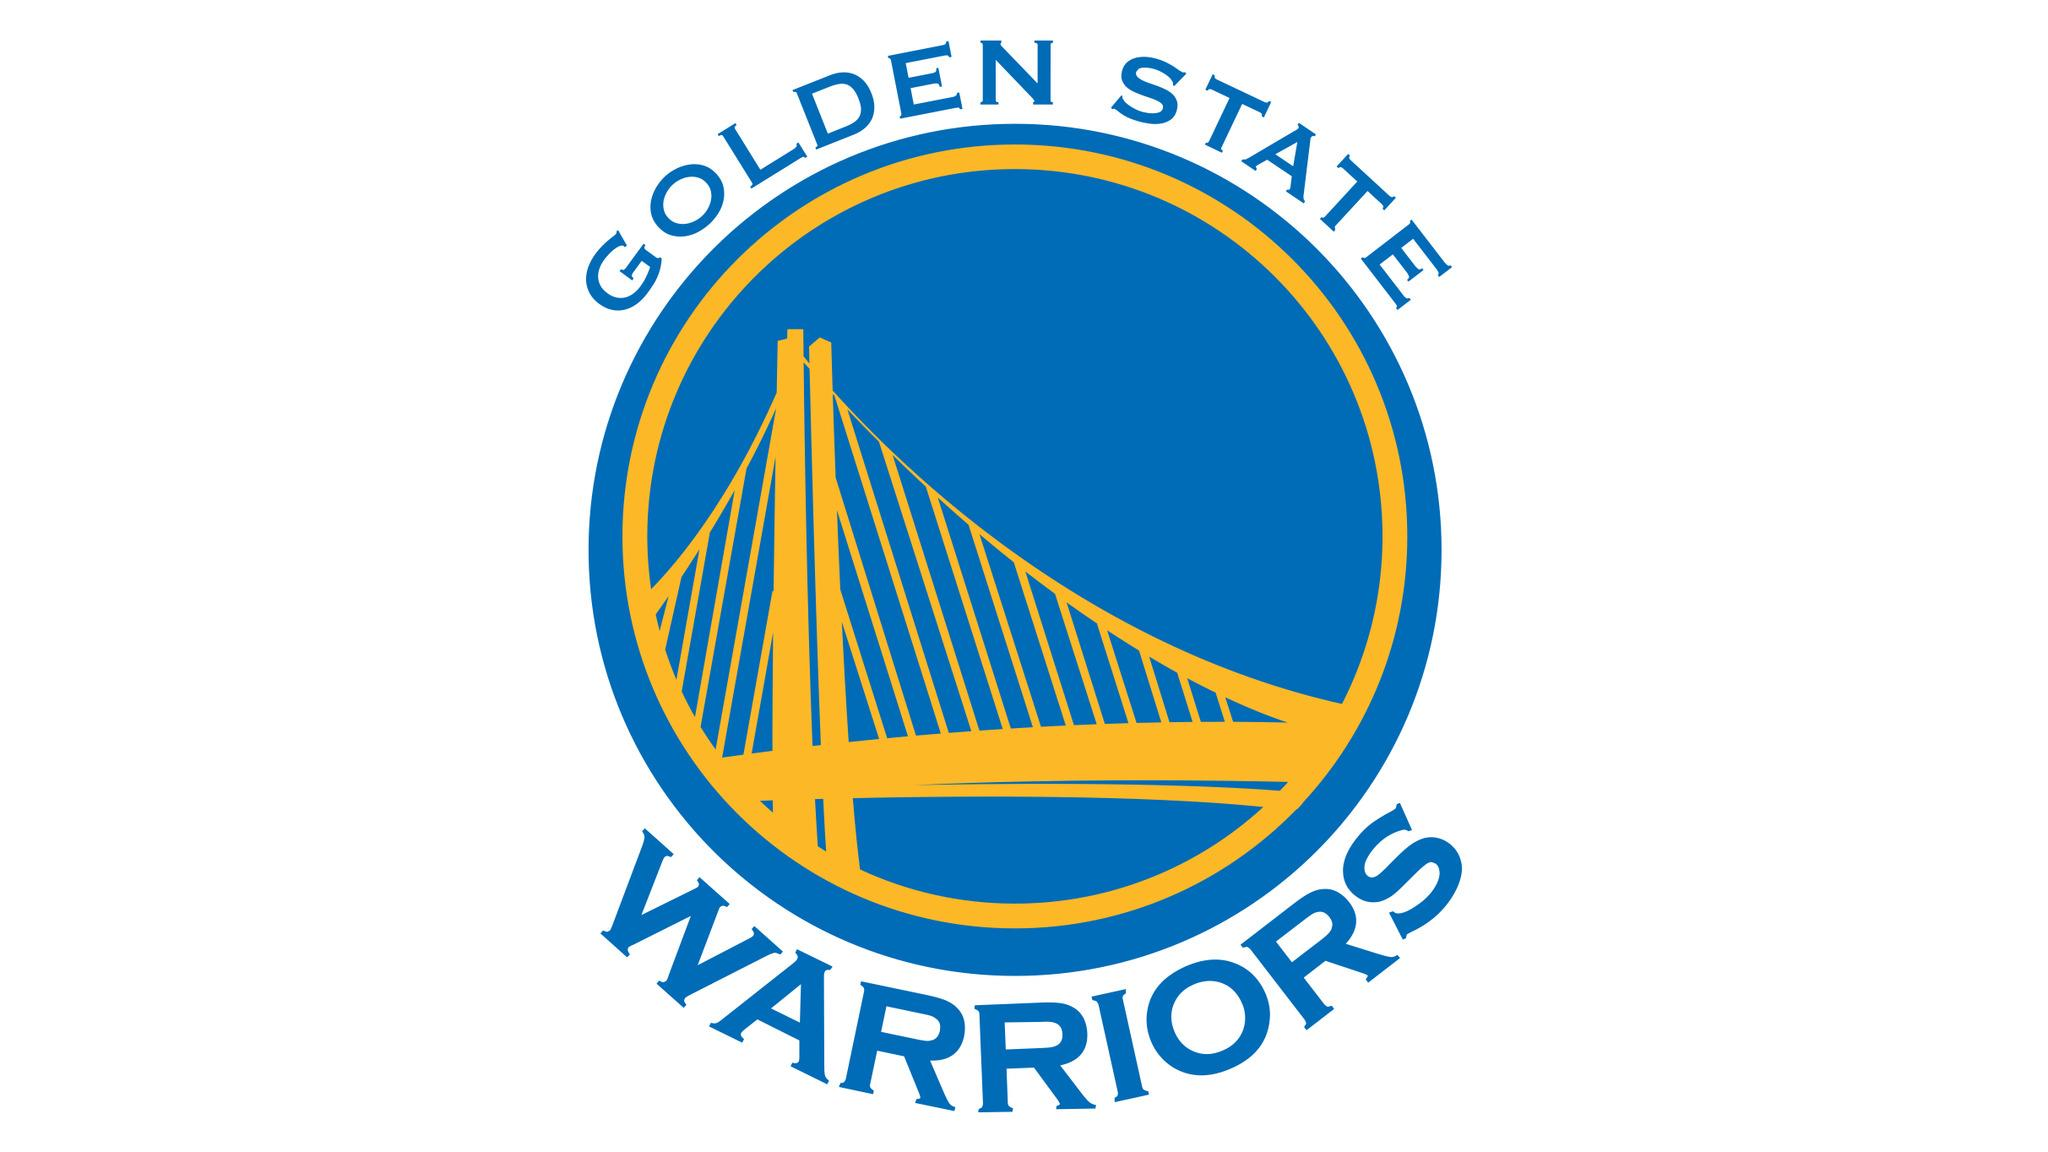 Golden State Warriors vs. Detroit Pistons - Oakland, CA 94621